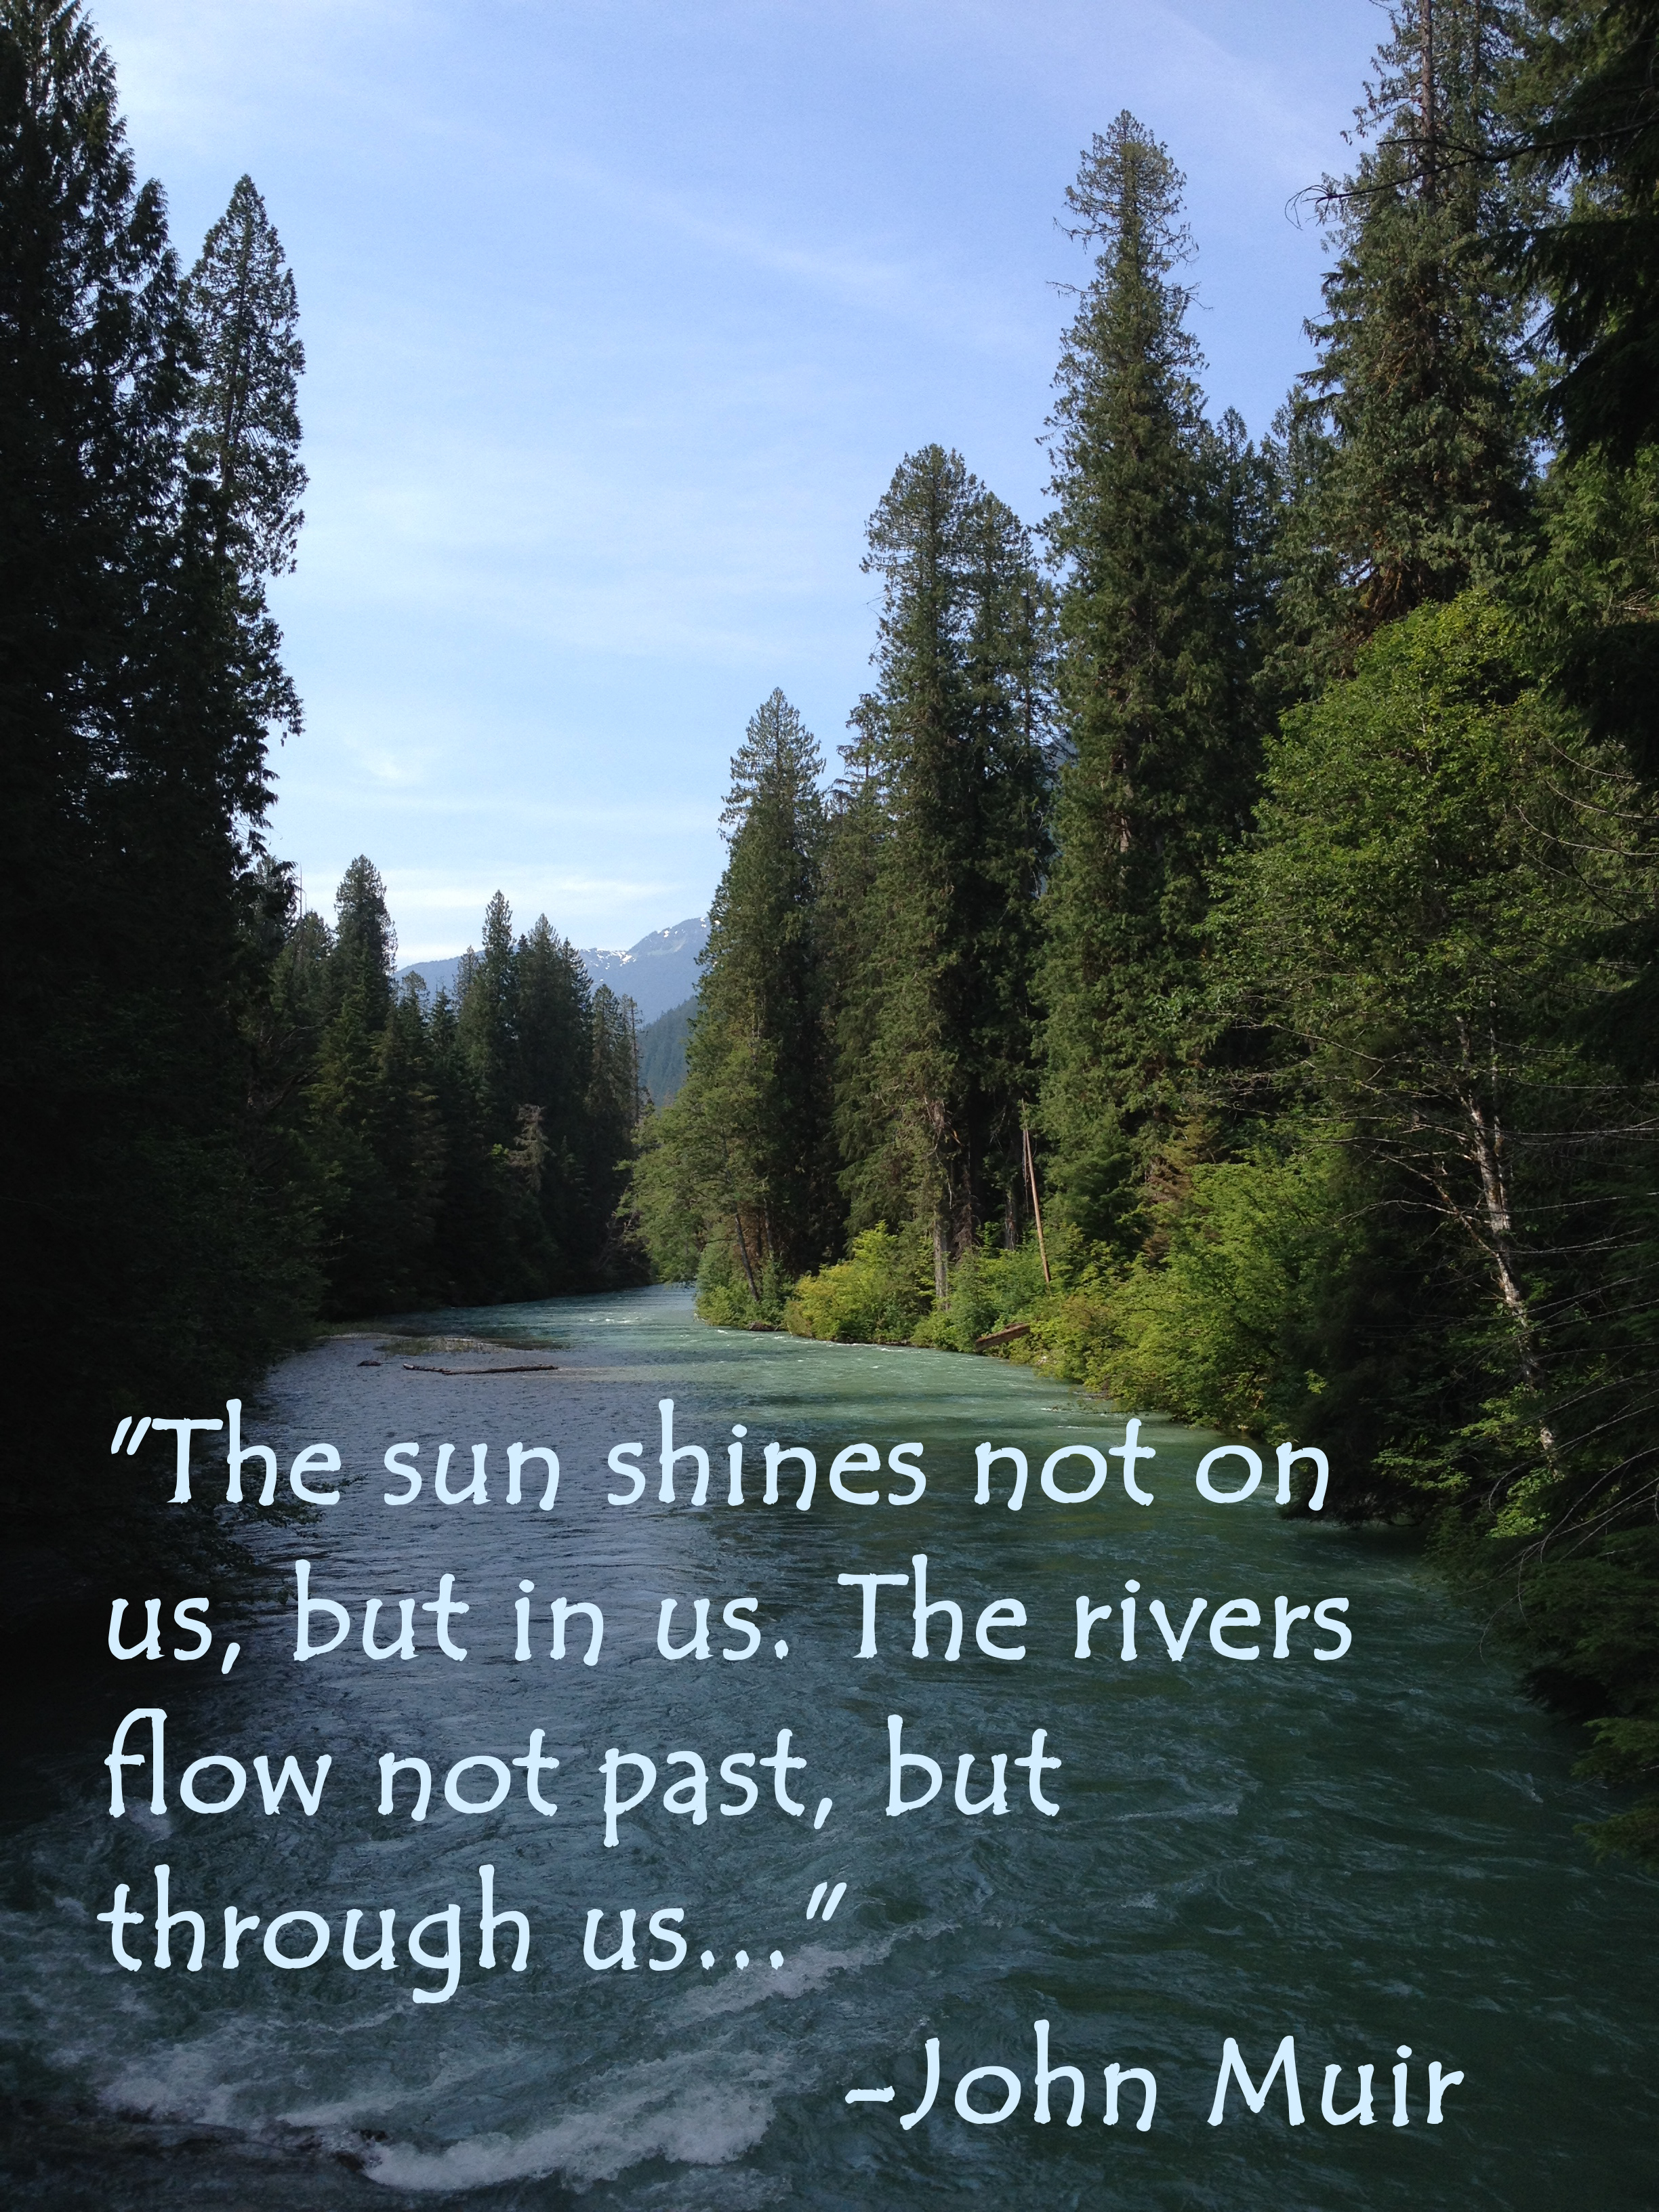 Skagit River With John Muir Quote Tamarascameras